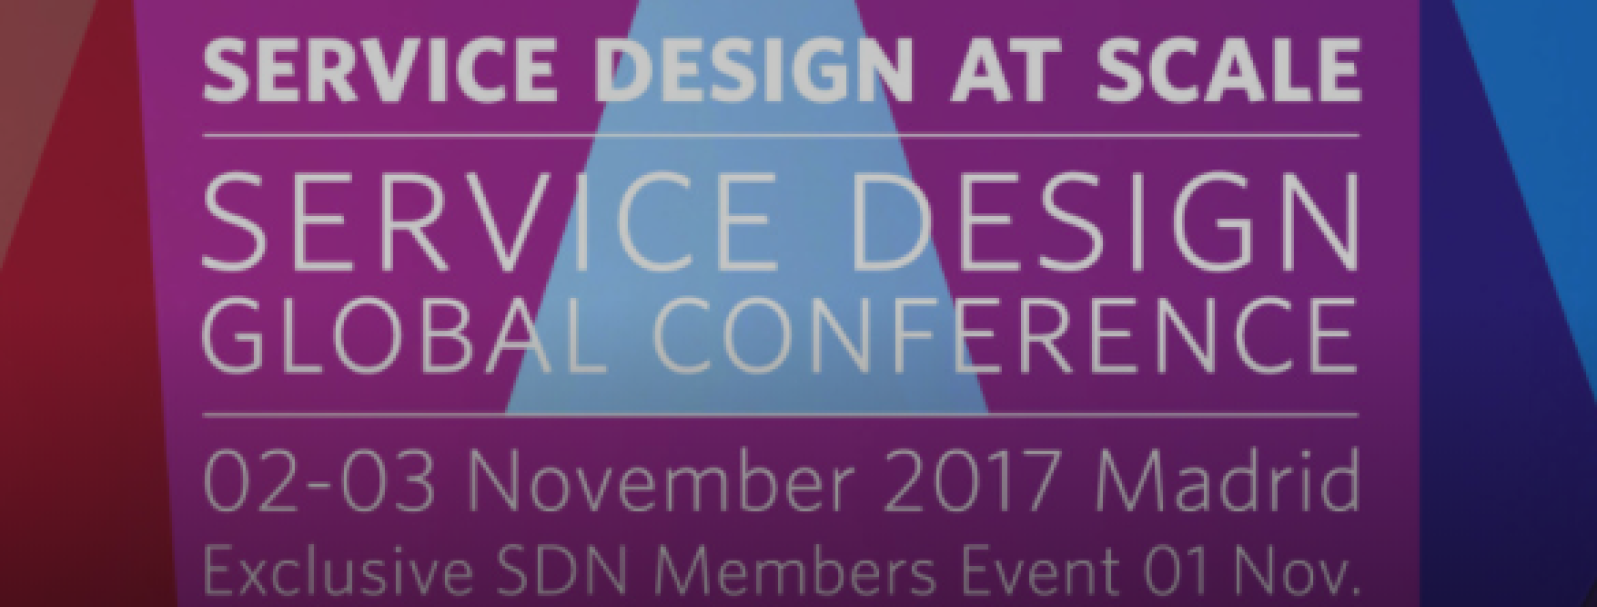 SDN Conference 2017 Videos evening